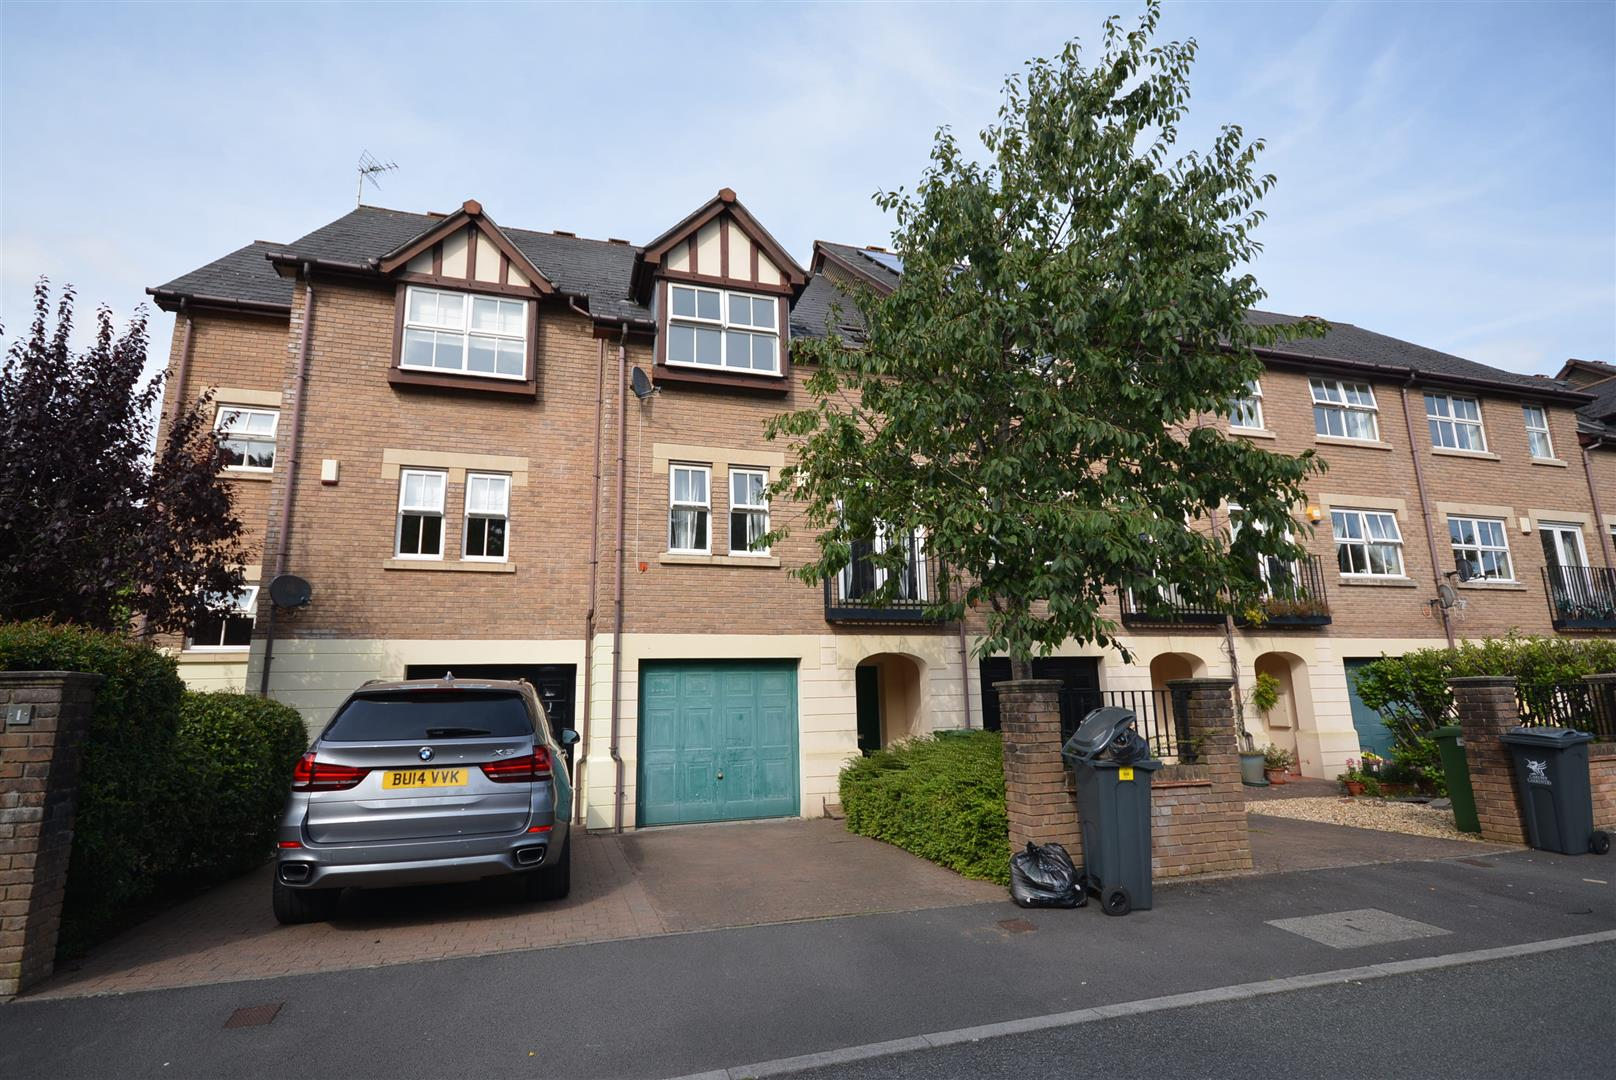 3 bed town house to rent in Nant Y Wedal, Cardiff, CF14